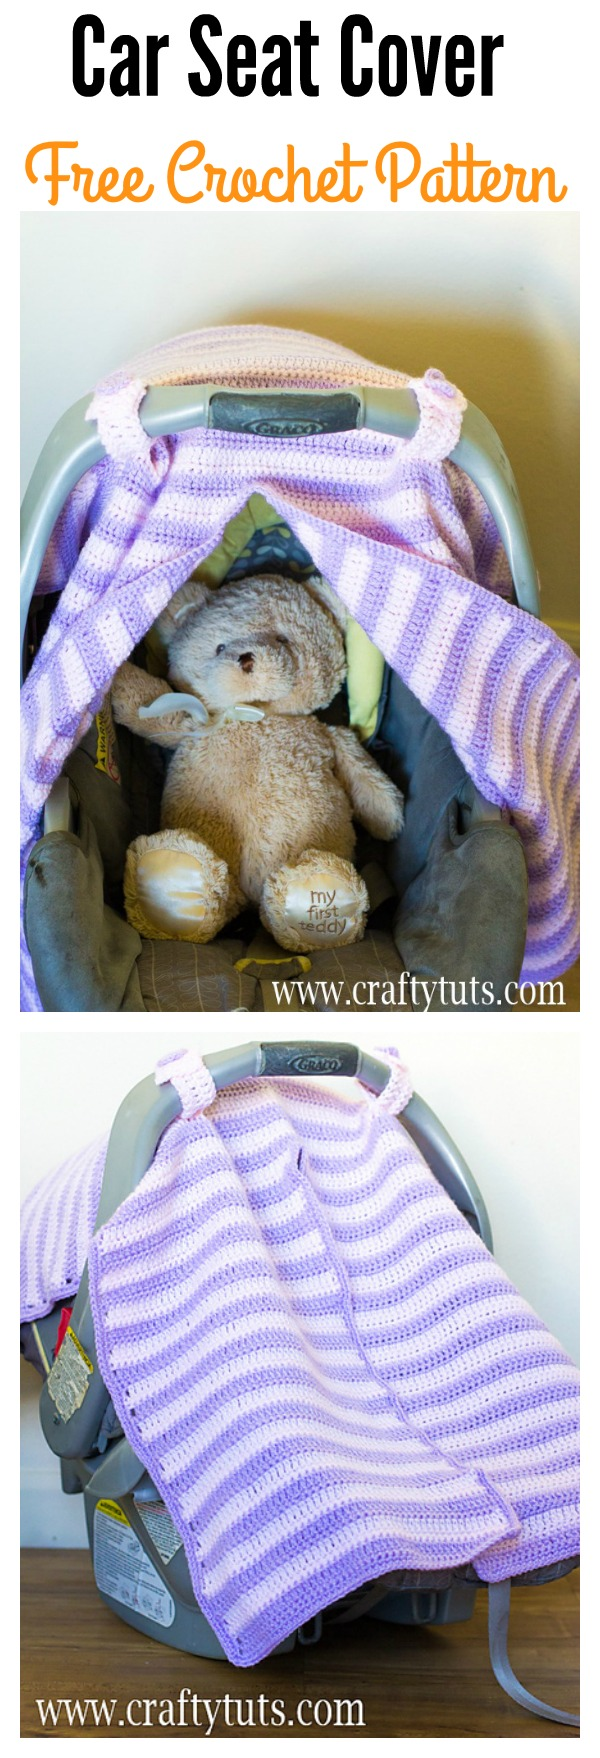 Car Seat Cover with Peekaboo Opening Free Crochet Pattern